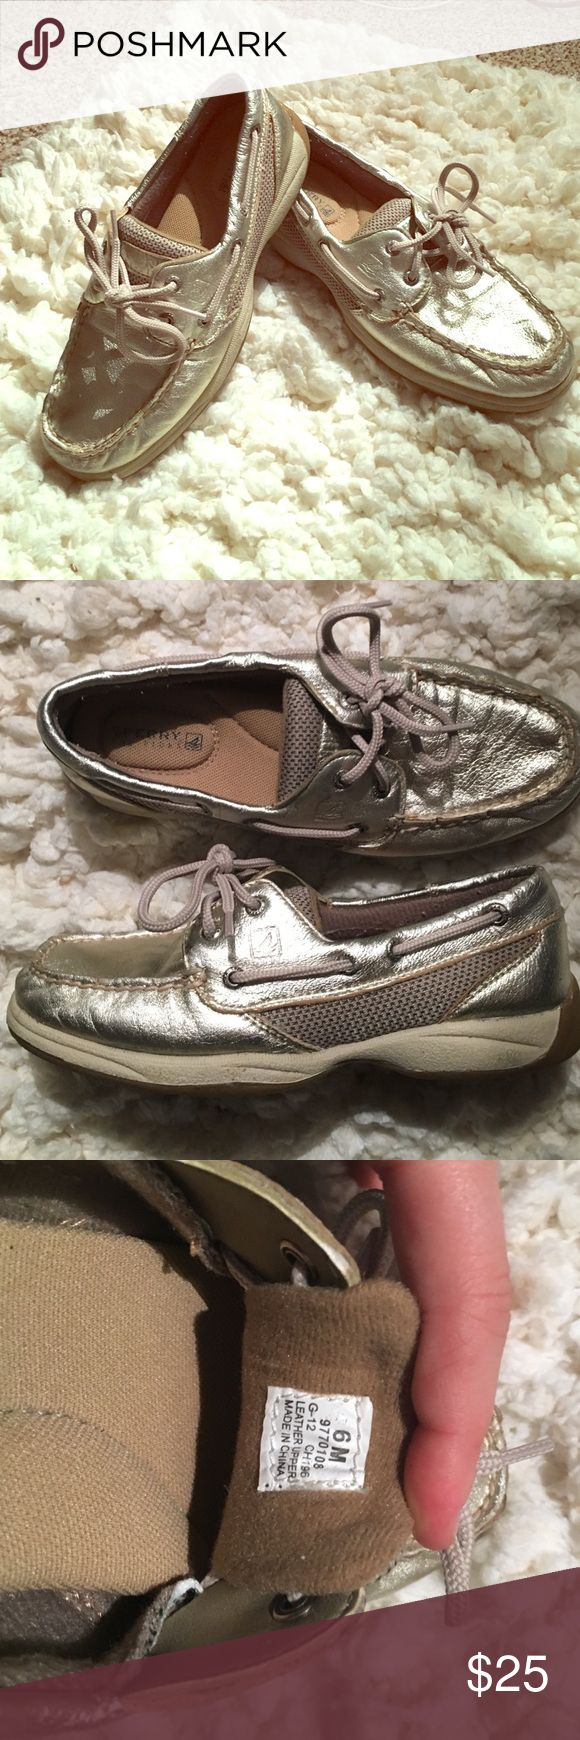 Selling this Sperry Top Sider Boat Shoes — Size 6 on Poshmark! My username is: lrm009. #shopmycloset #poshmark #fashion #shopping #style #forsale #Sperry Top-Sider #Shoes